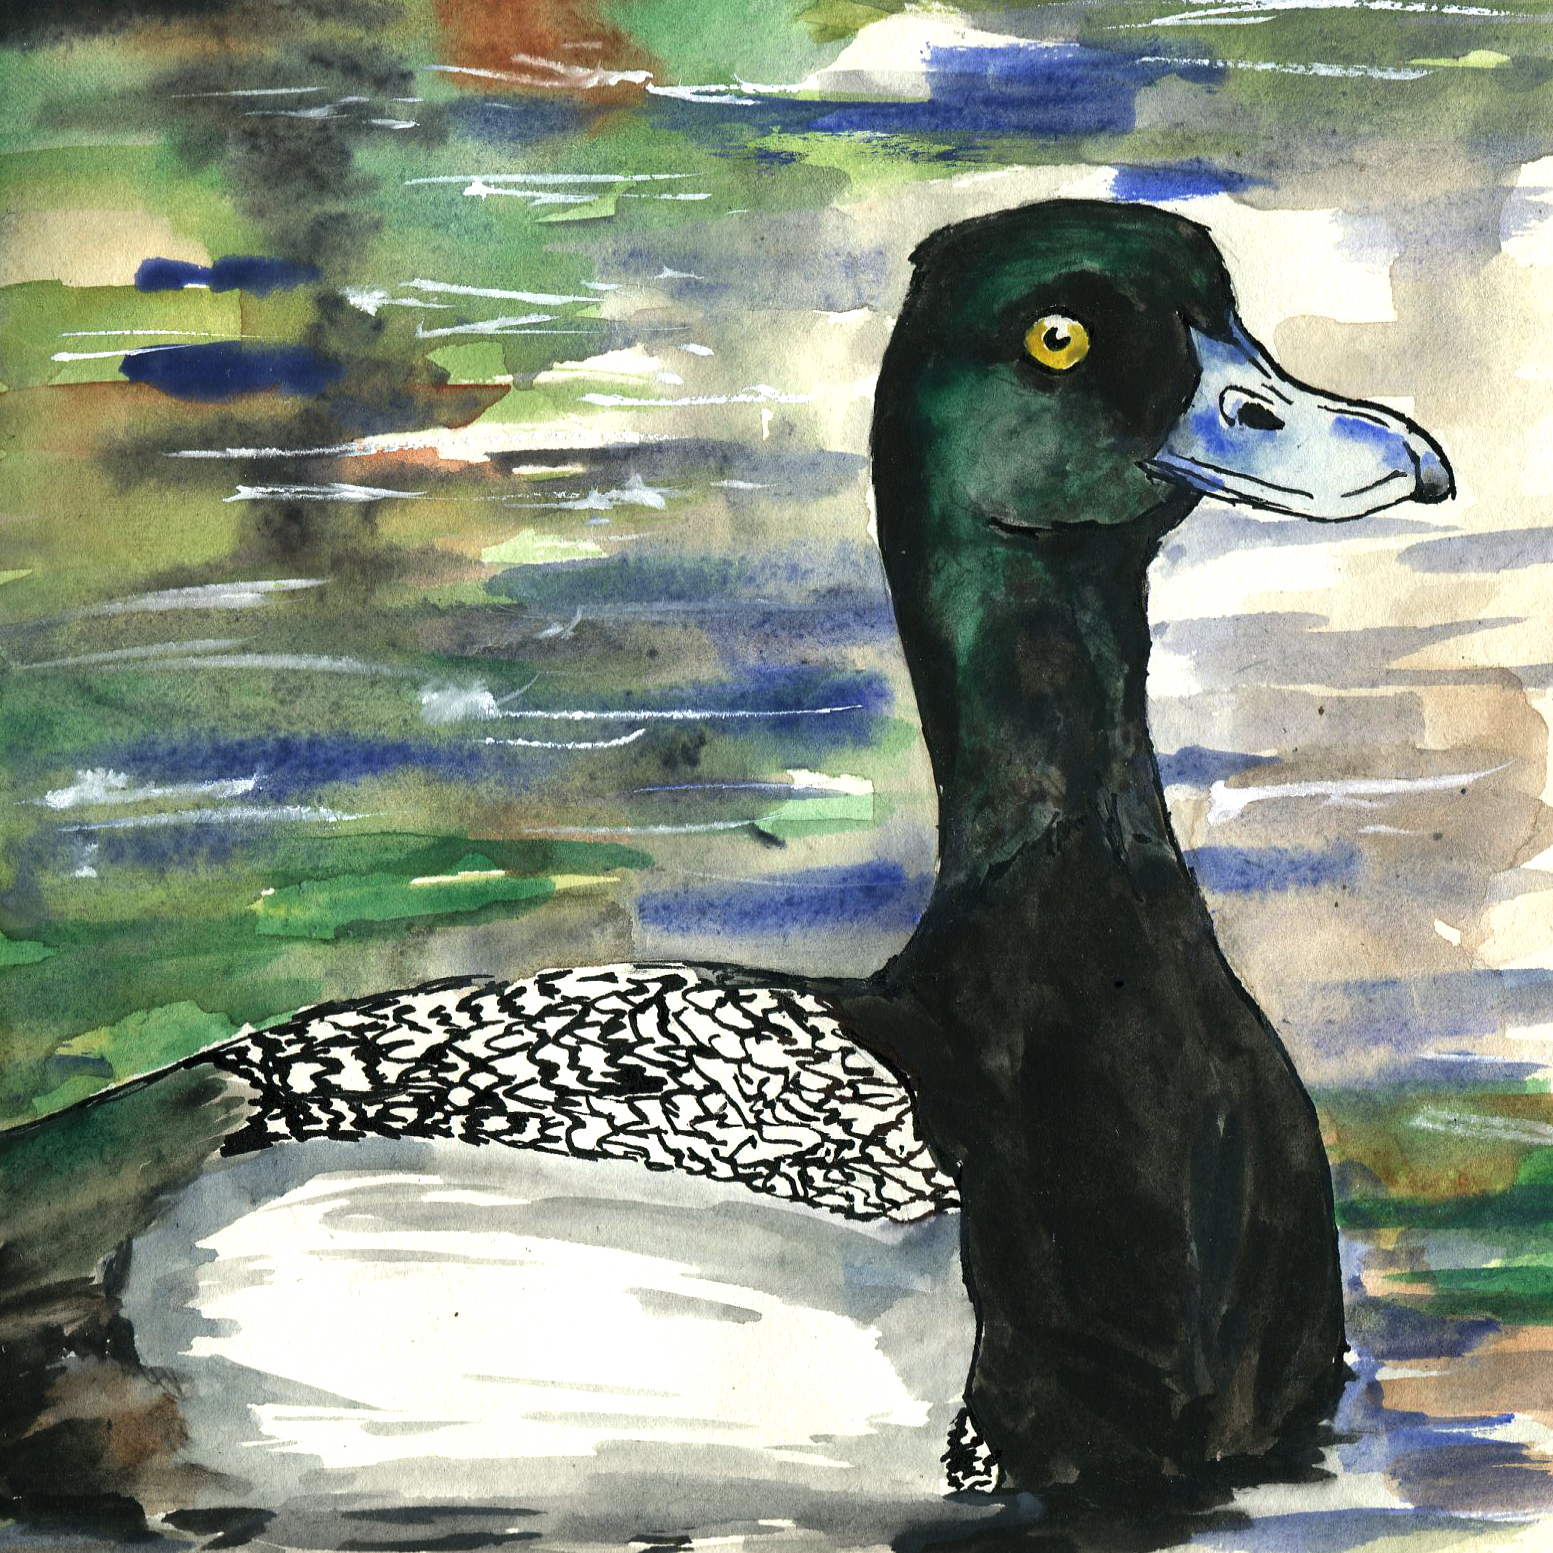 116. Greater Scaup